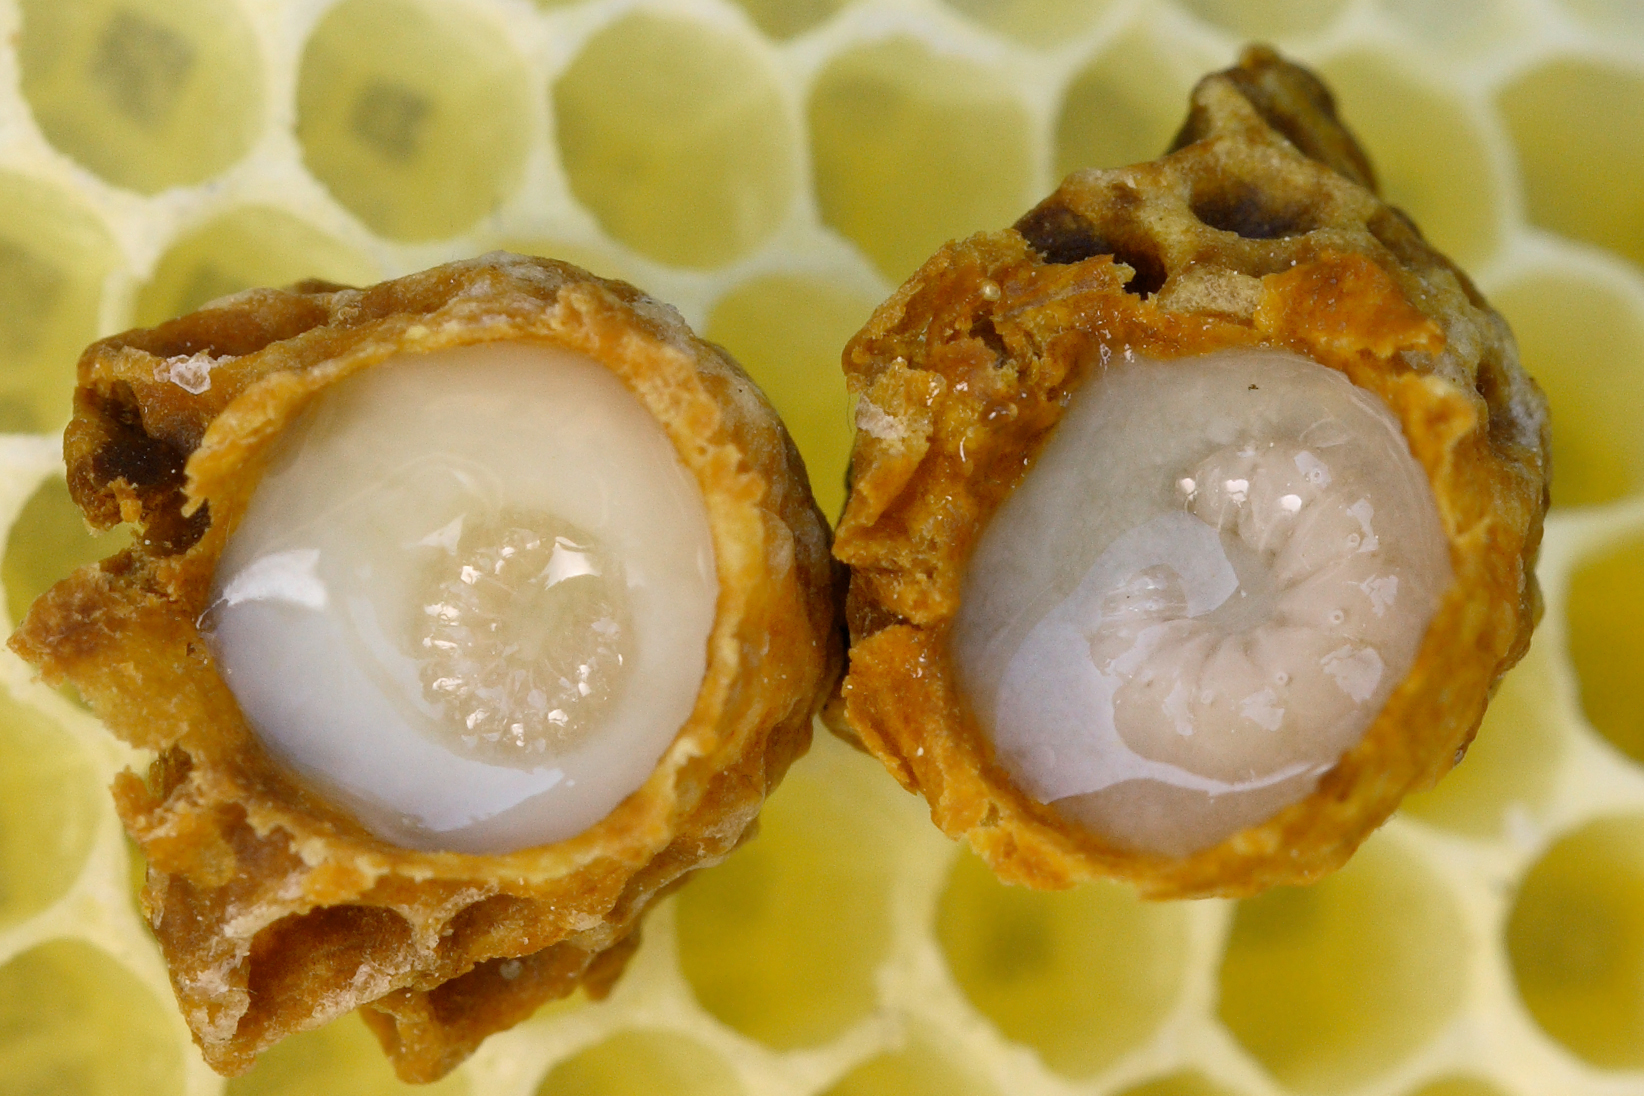 masoudhoneyco.blog.ir royal jelly cell 01